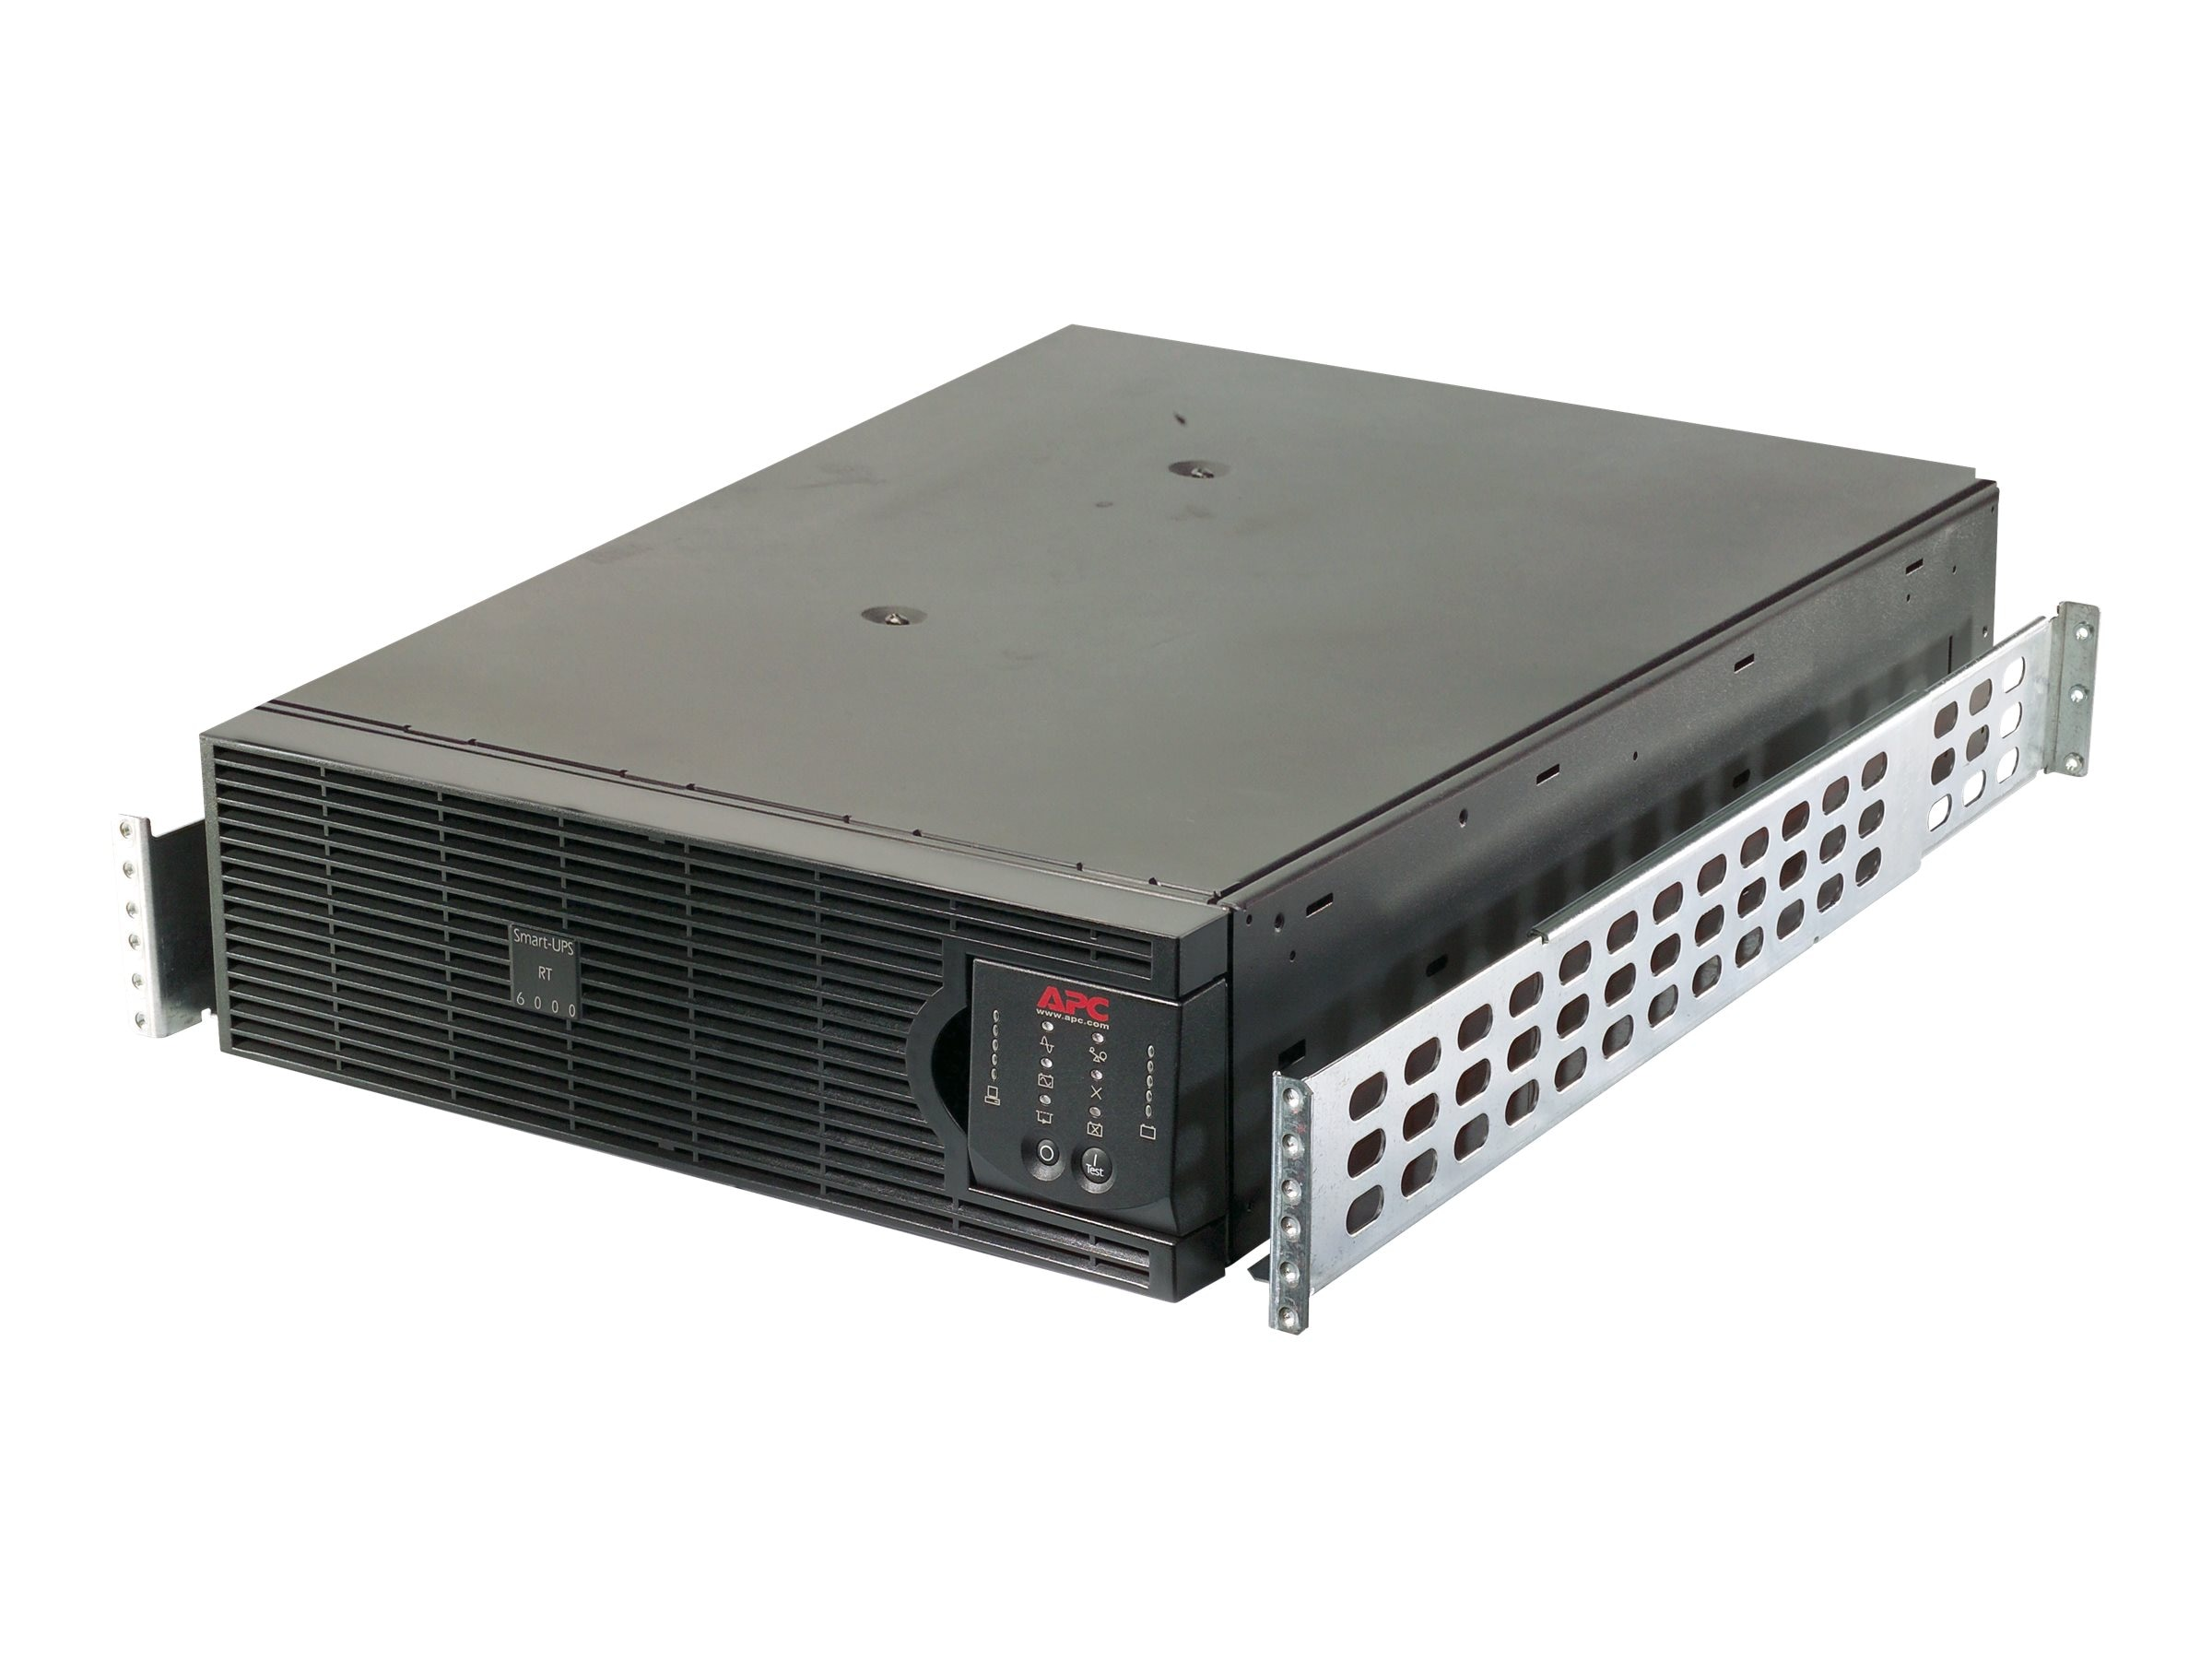 APC Smart-UPS RT 3000VA 2100W 120V L5-30P Input (6) 5-15R (2) 5-20R Outlets Network Card